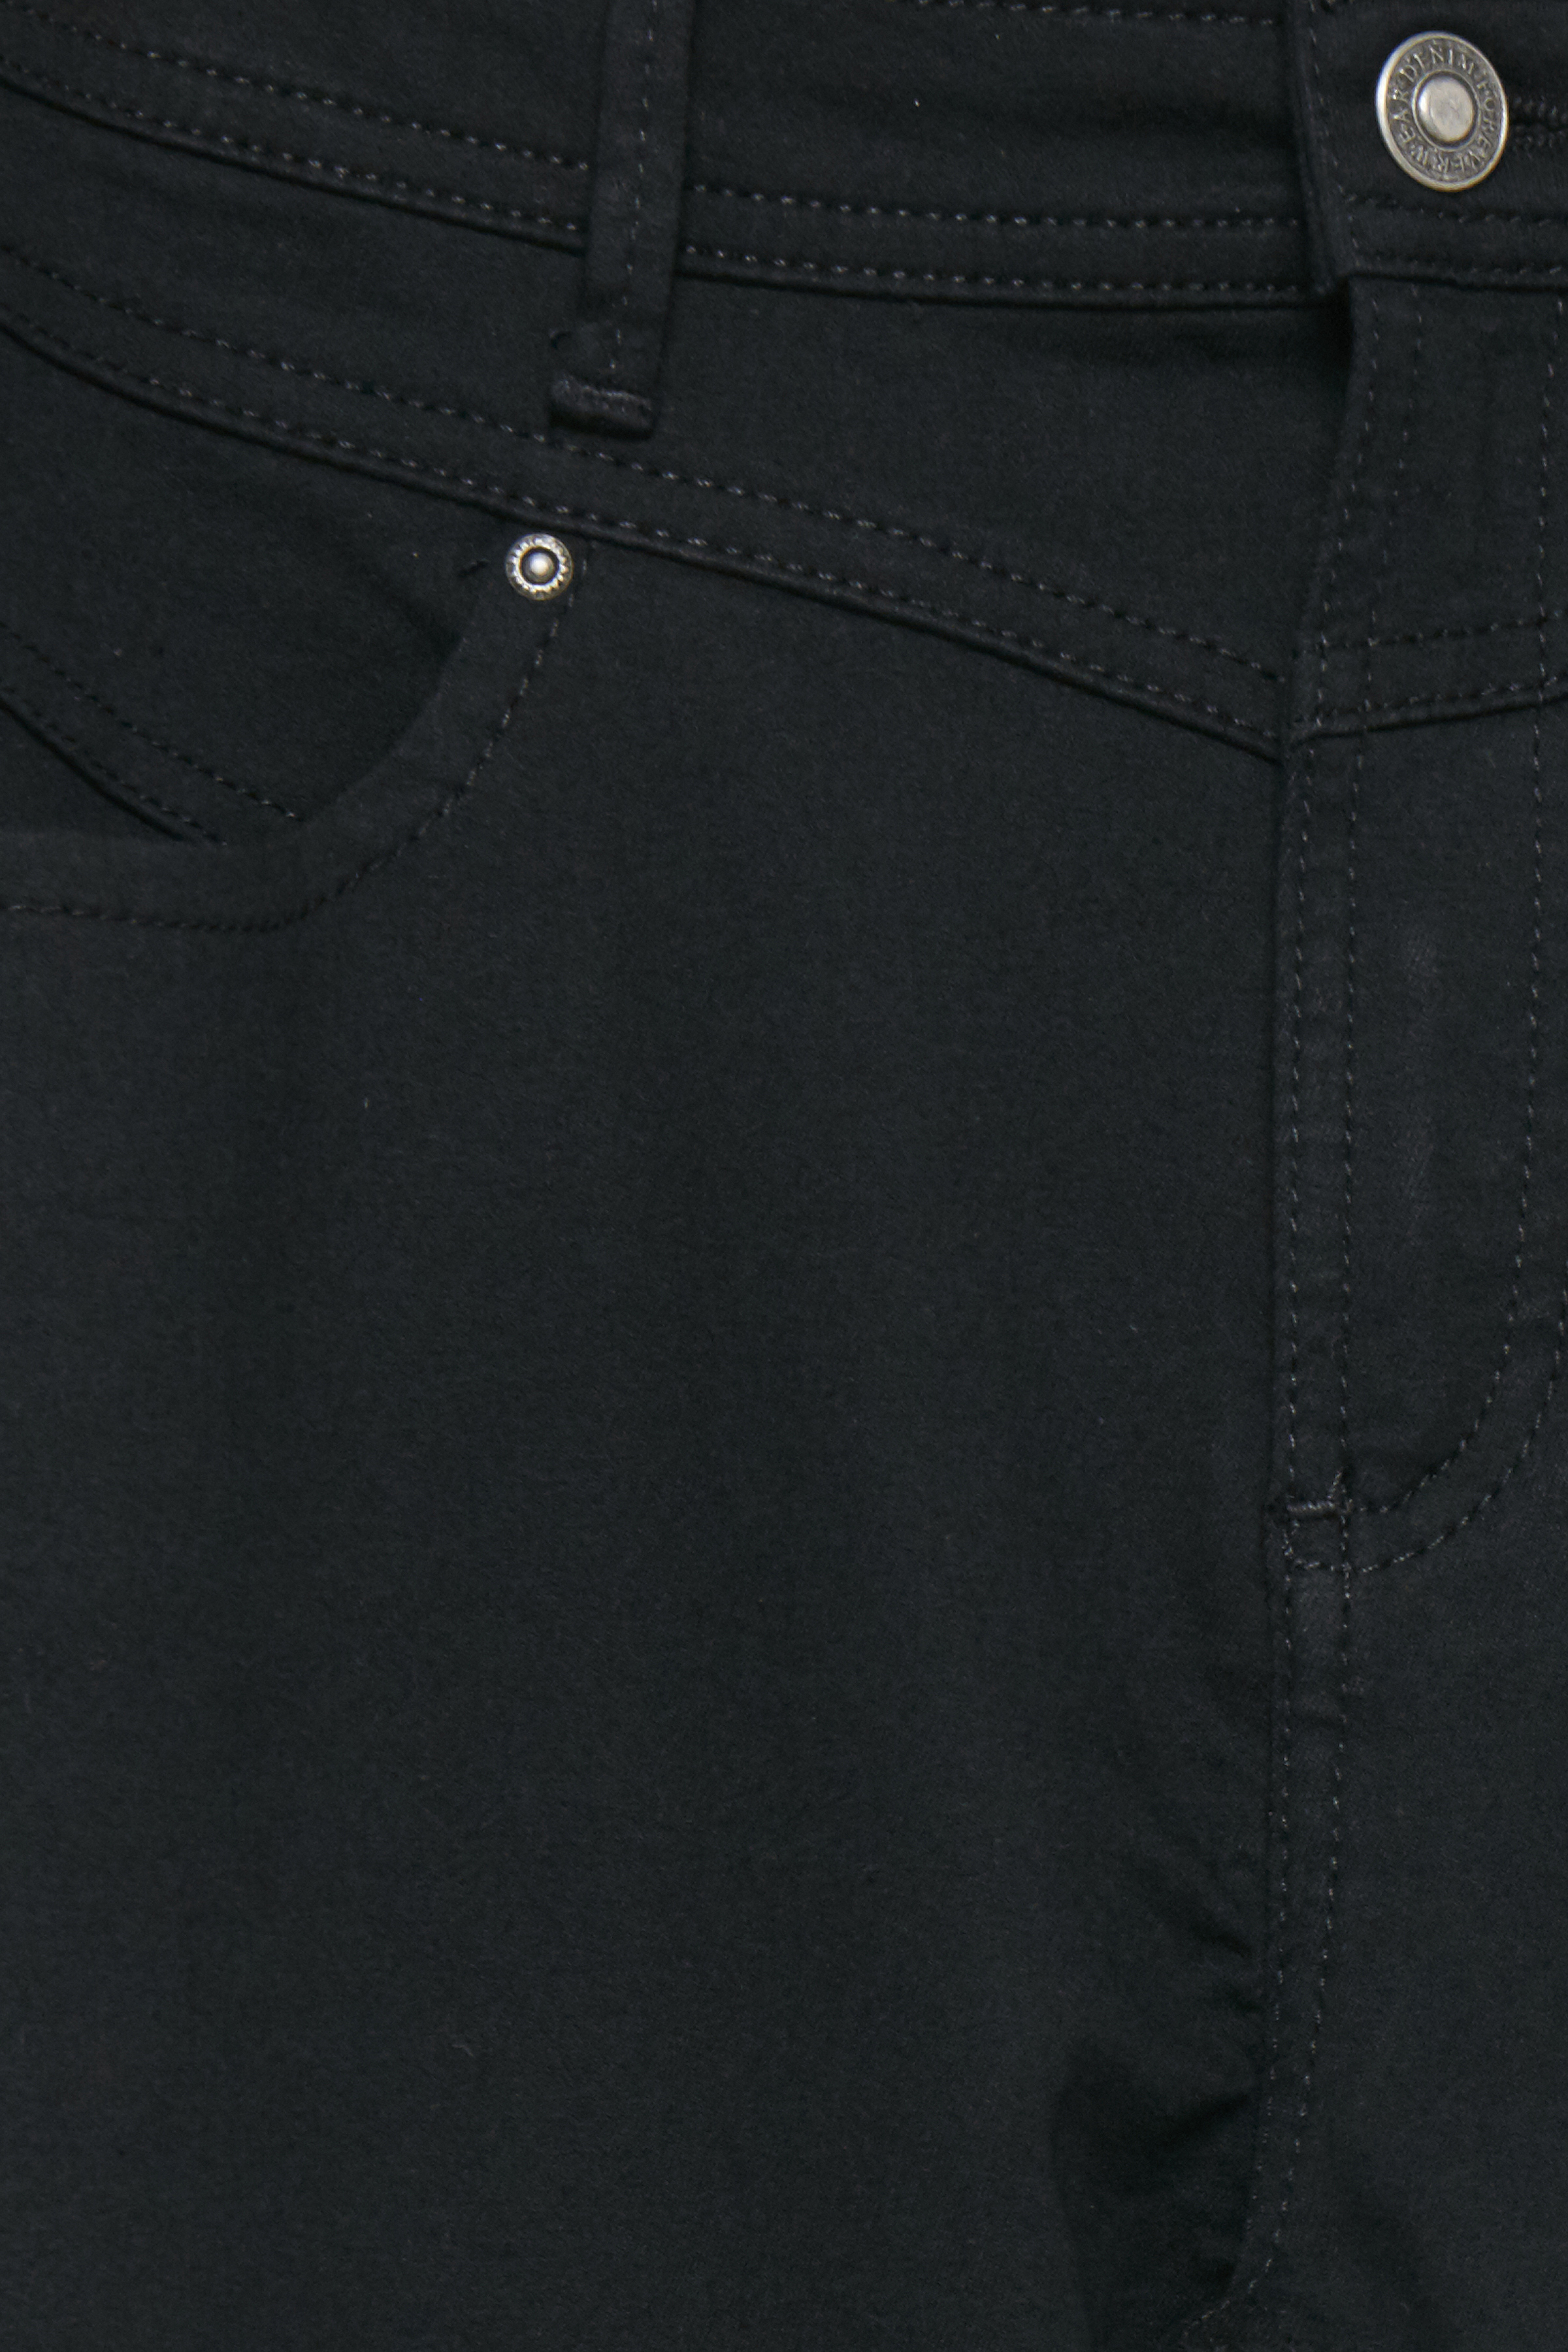 Black Jeans from b.young – Buy Black Jeans from size 25-36 here